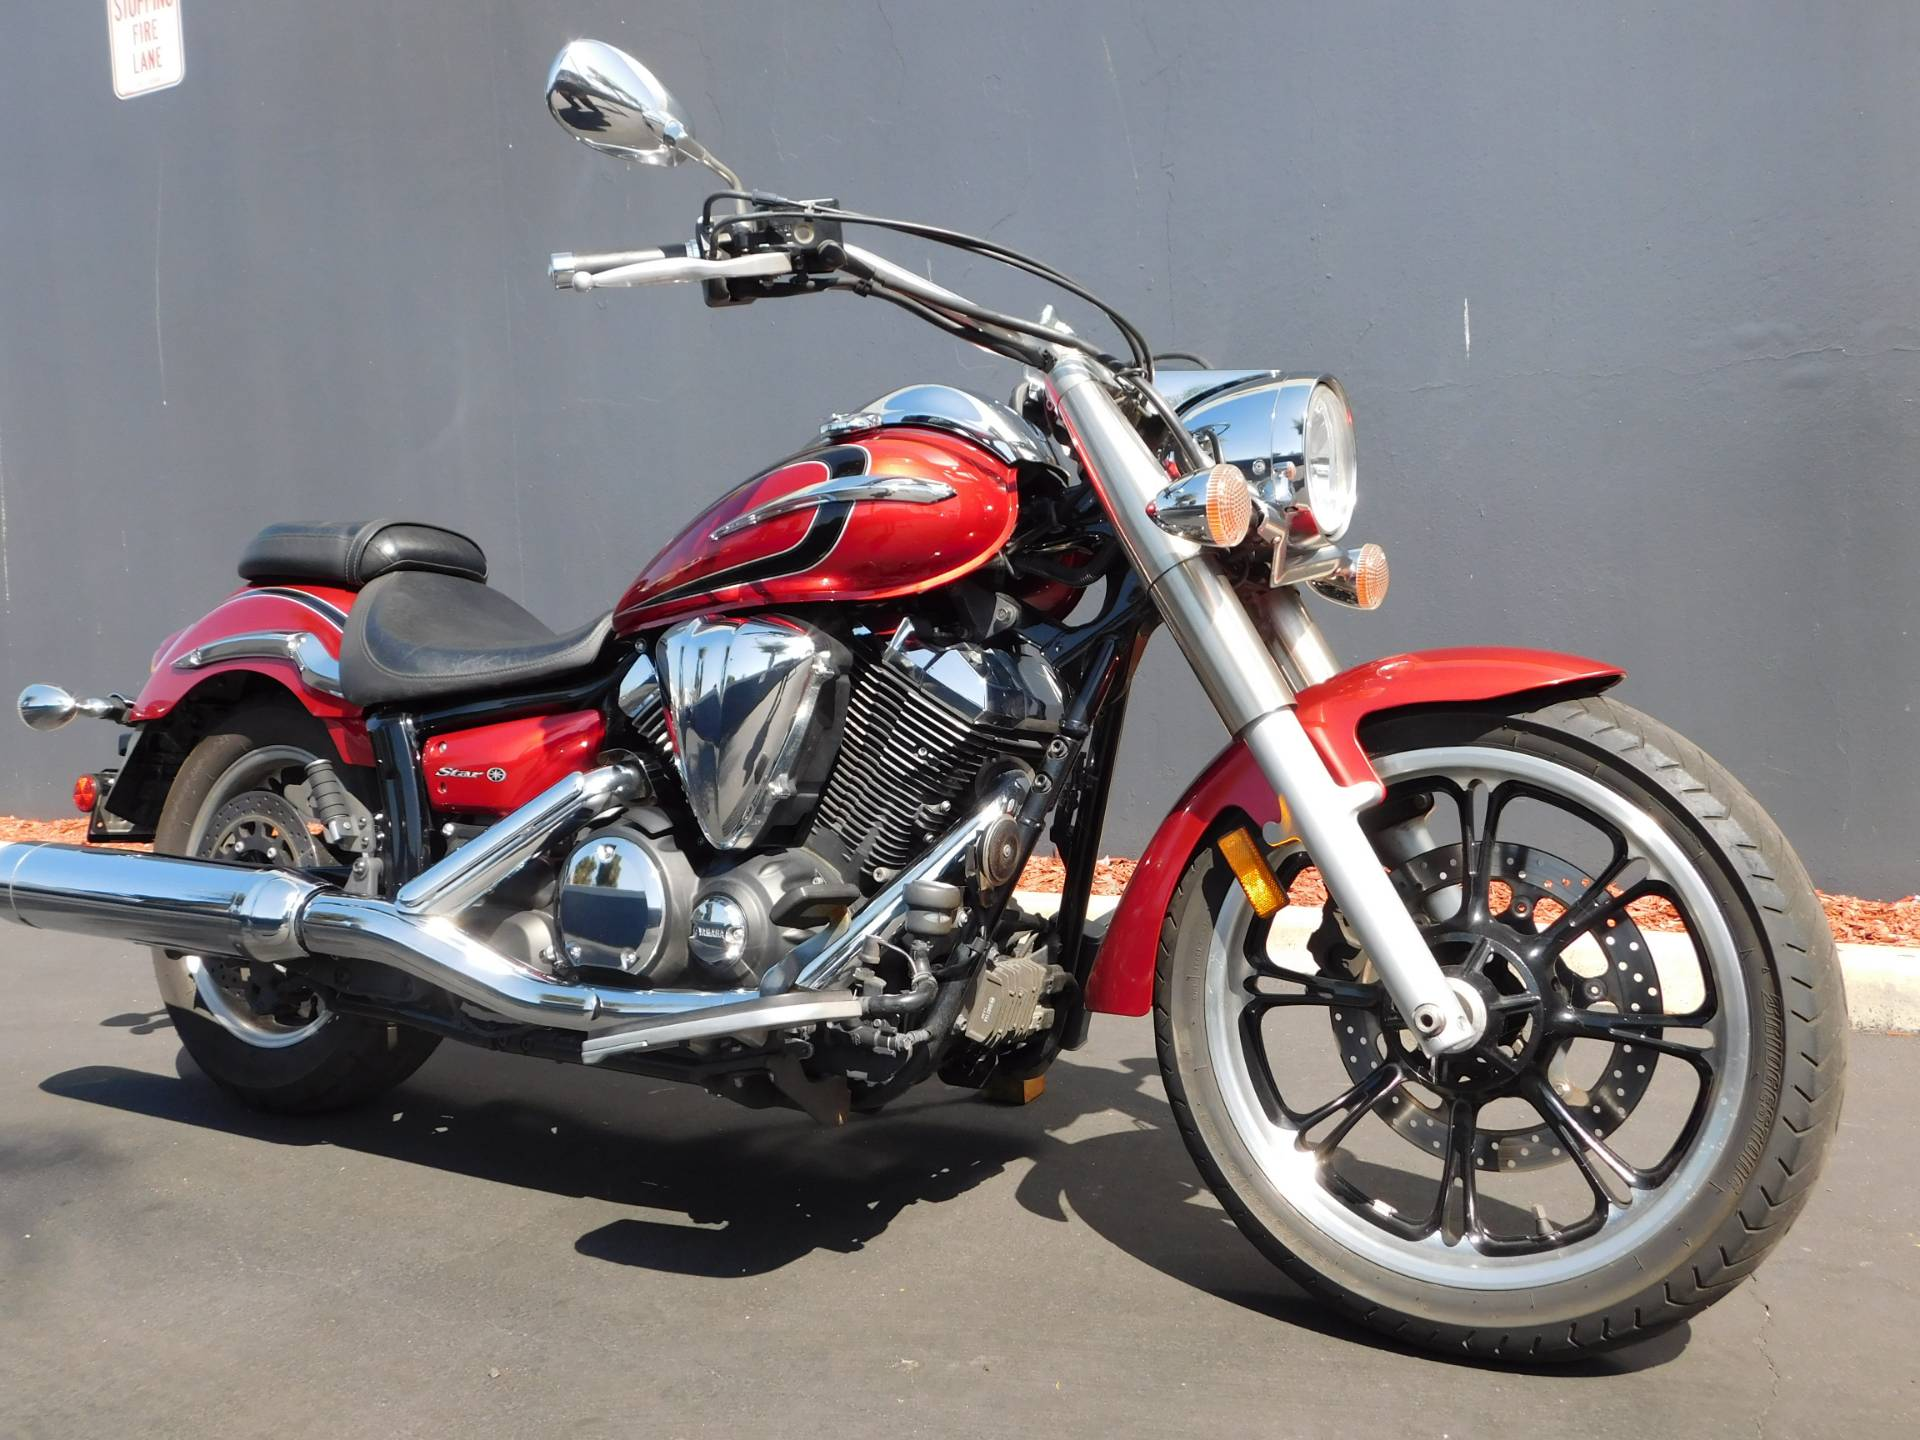 2012 Yamaha V Star 950 in Chula Vista, California - Photo 9